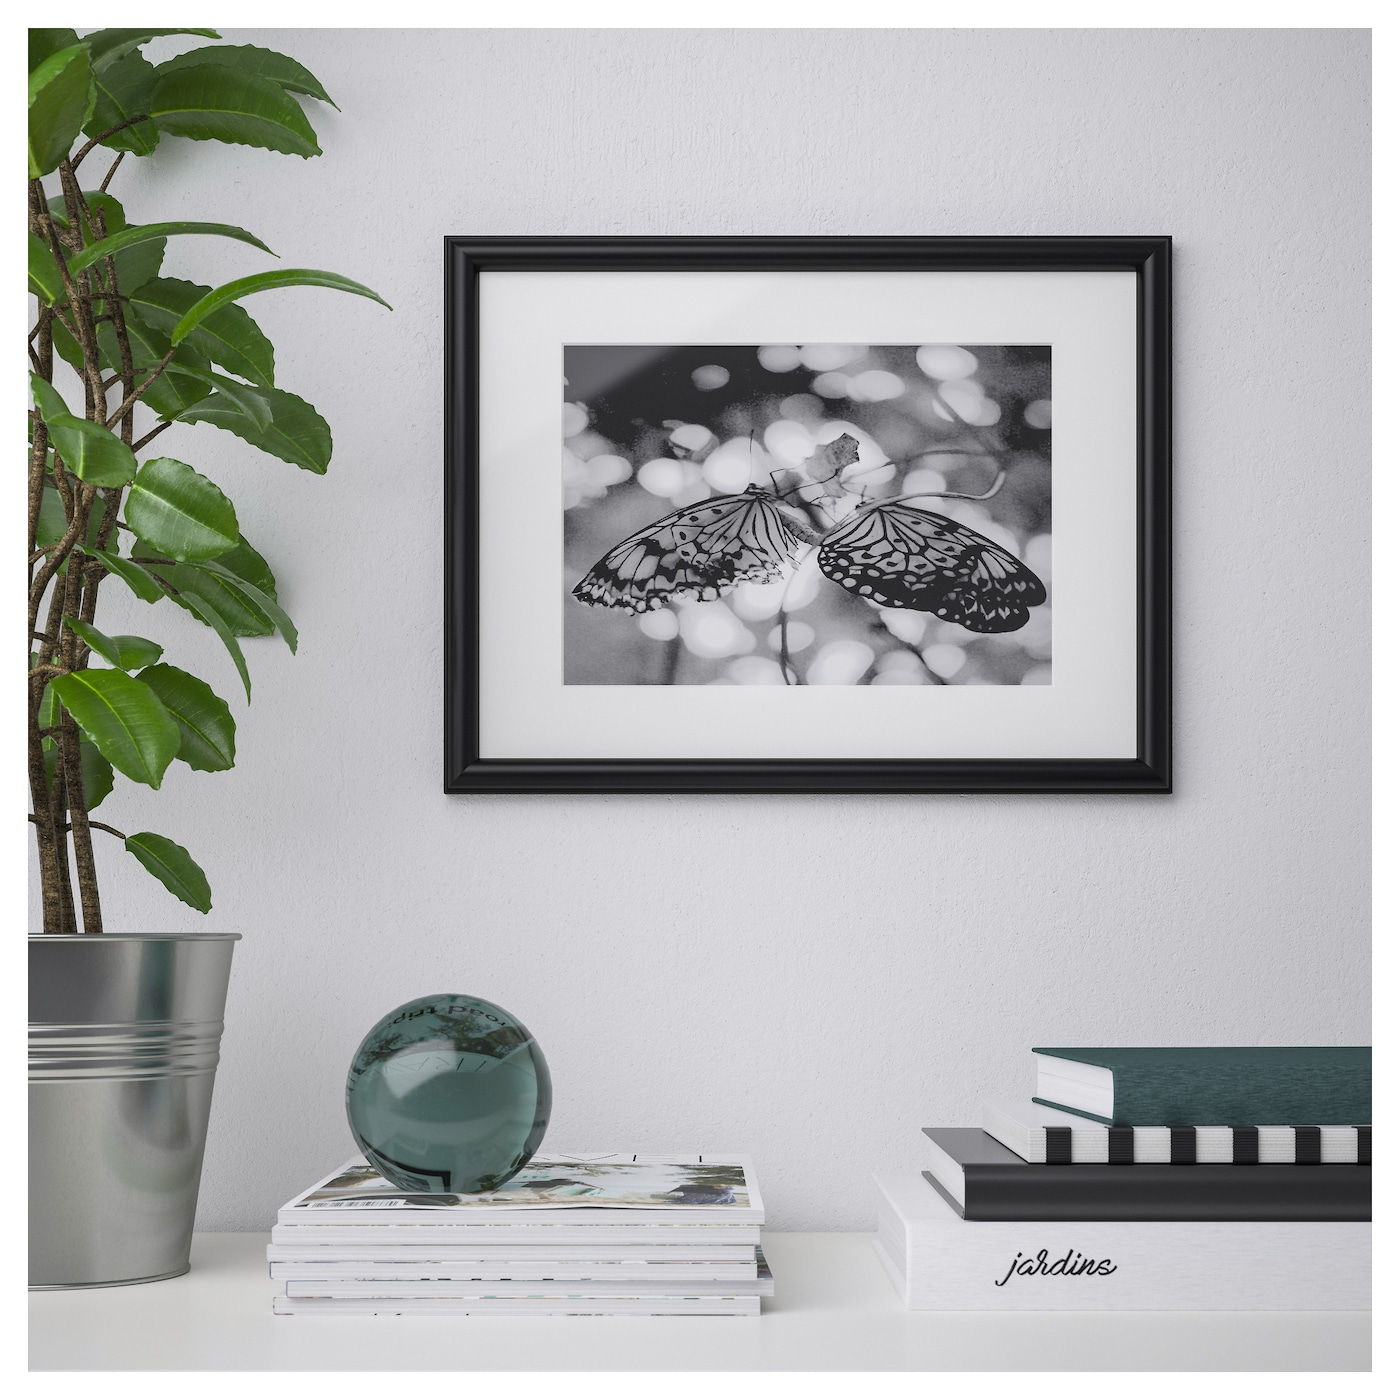 Awesome 30x40 Picture Frame Image - Picture Frame Design ...